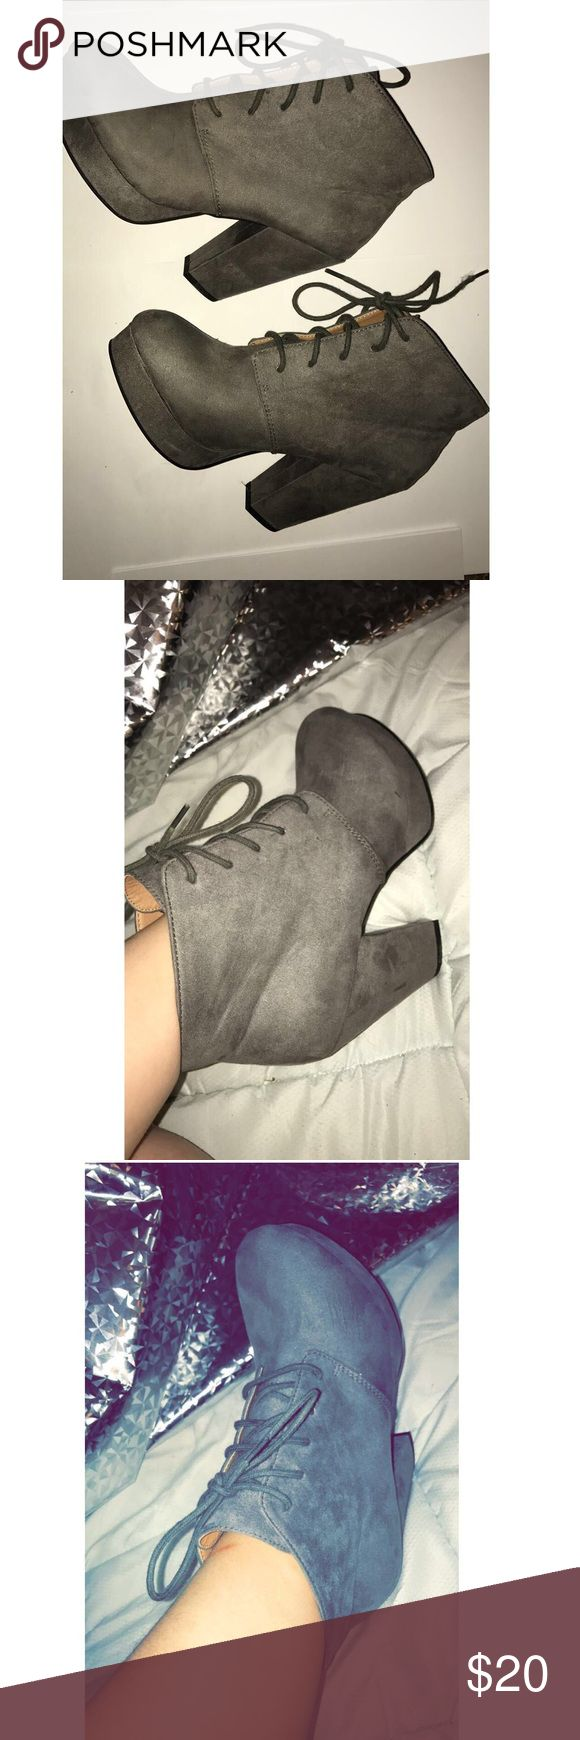 WORN ONCE GREY BOOTIES!! Grey booties that I wore once to my graduation party. They're a suede material size 8 women's. they're in great shape with only one scuff (pictured) that's not even noticeable when you're wearing them! I bought them for $49.99 at DSW!   DONT FORGET TO OFFER A PRICE! 🏋🏻 MIXN06 Shoes Ankle Boots & Booties